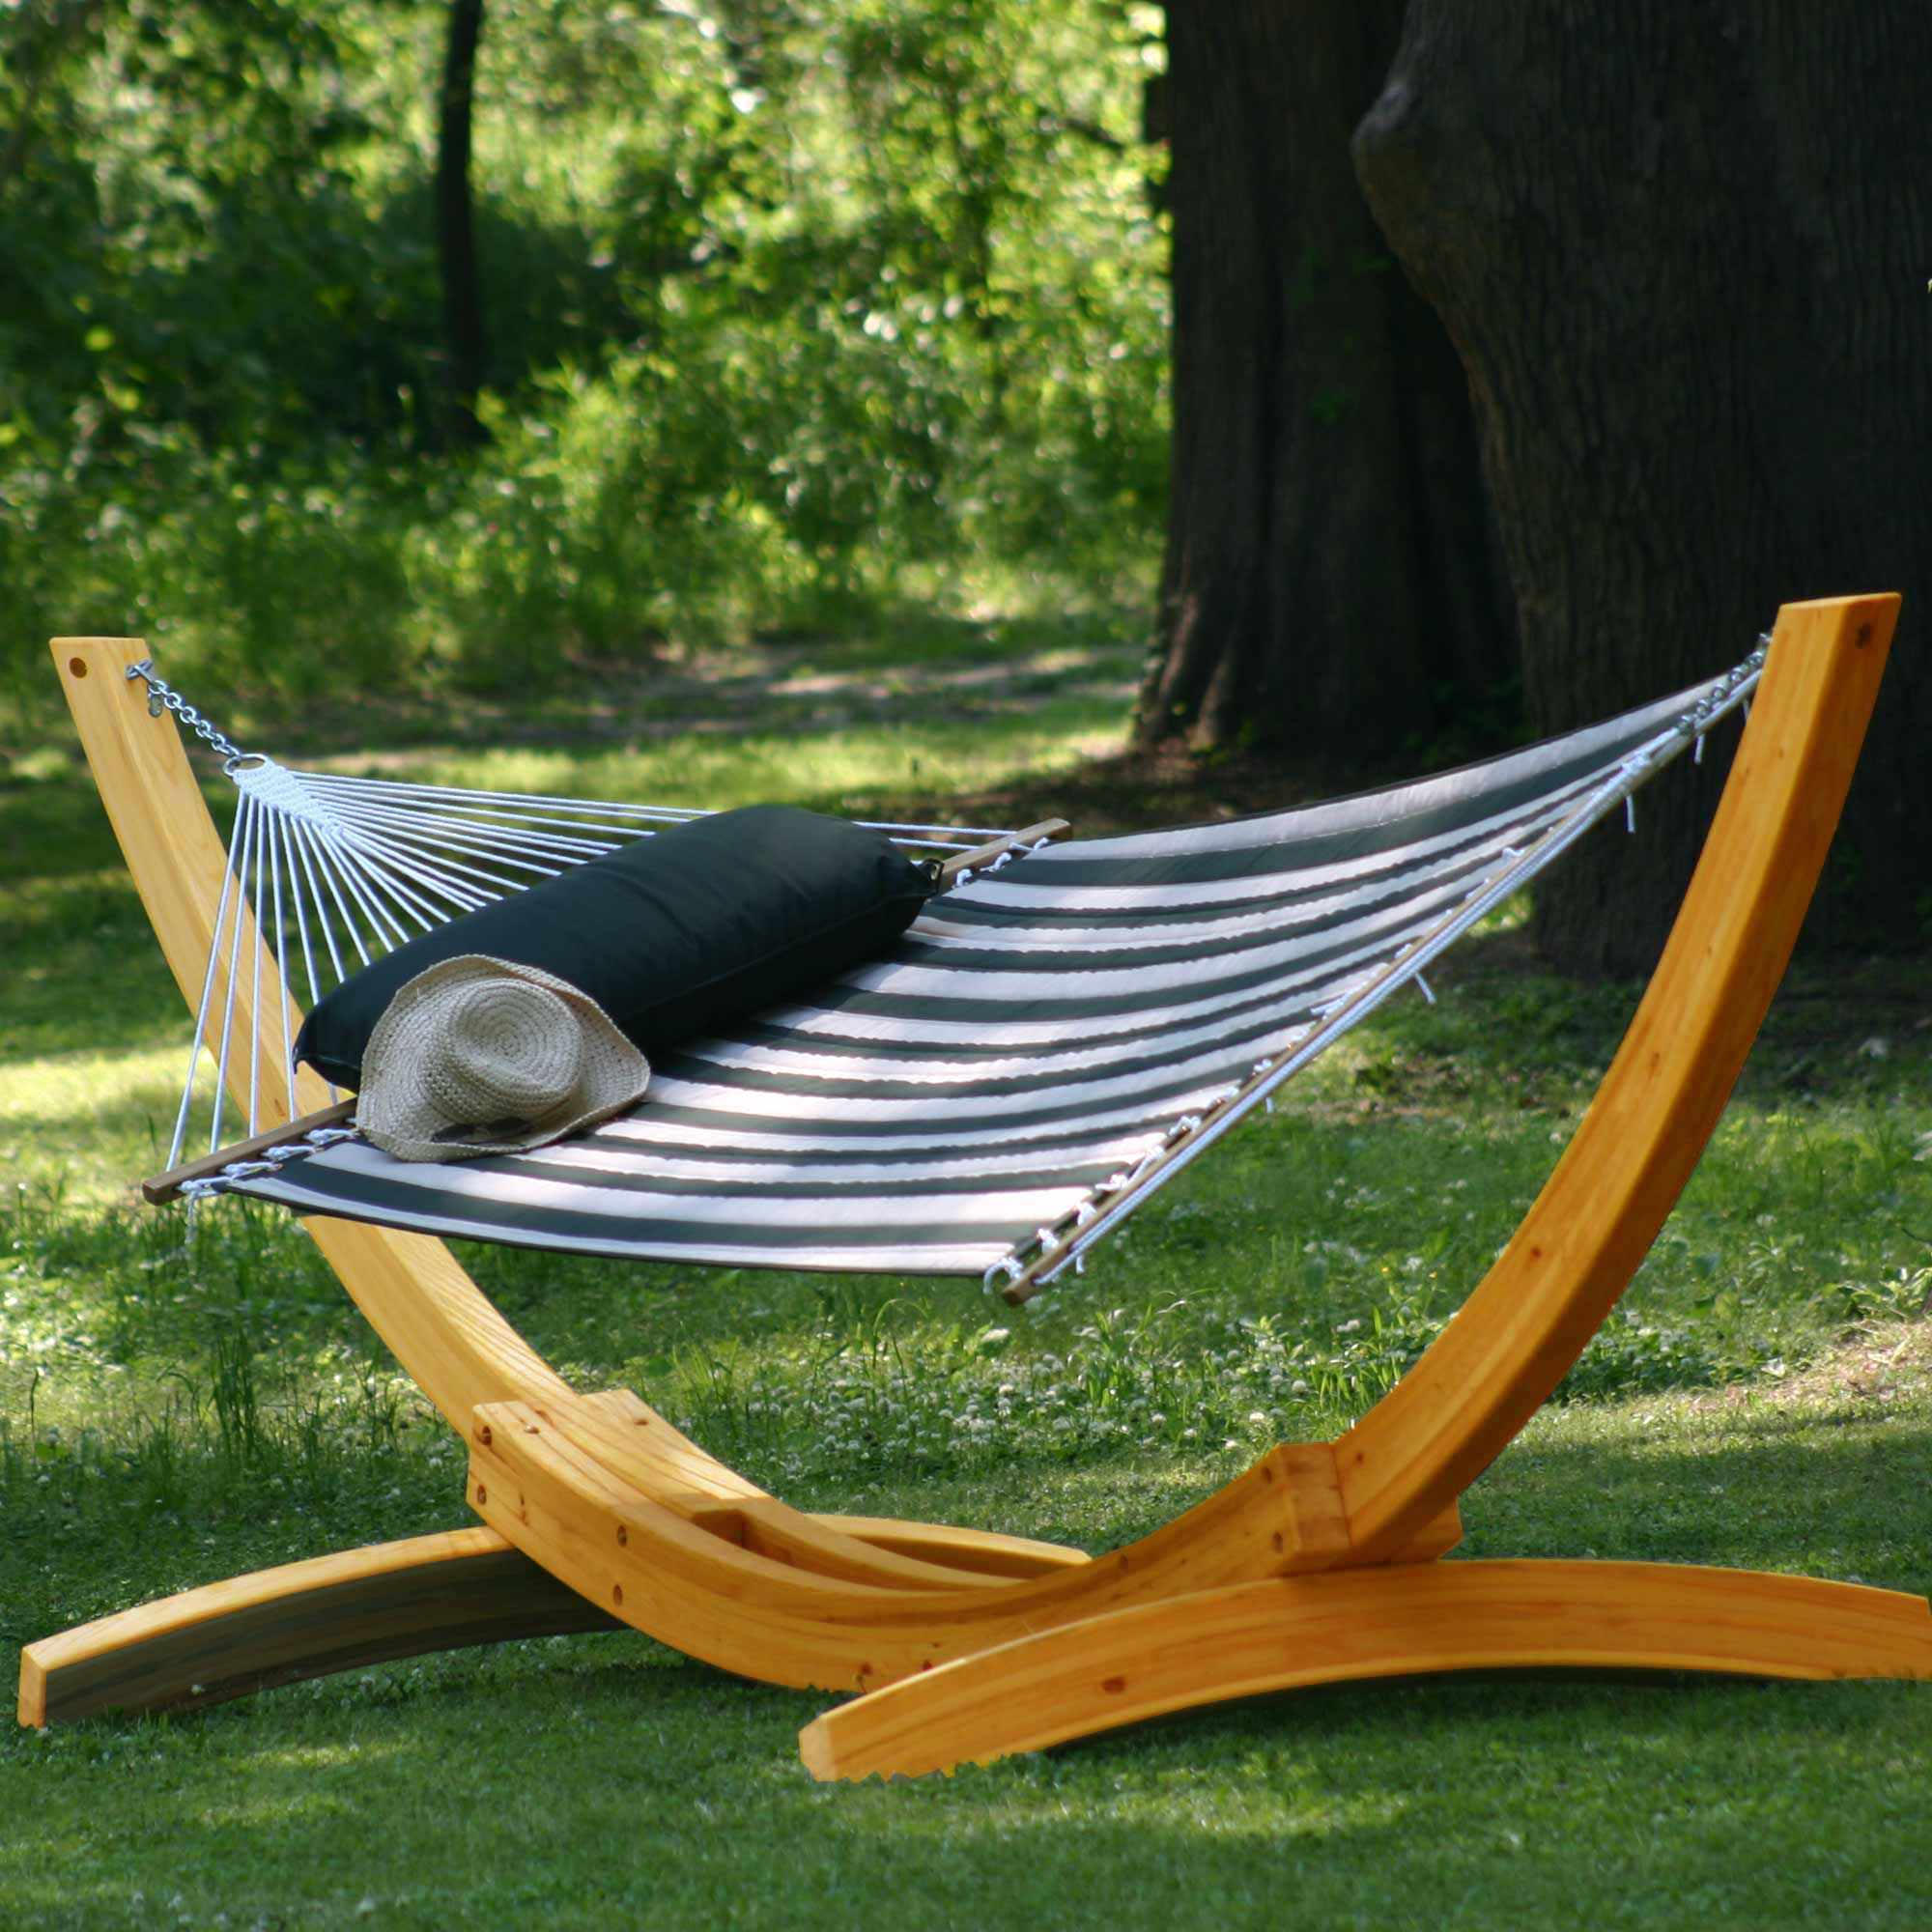 Medium image of deluxe roman arc cypress hammock stand